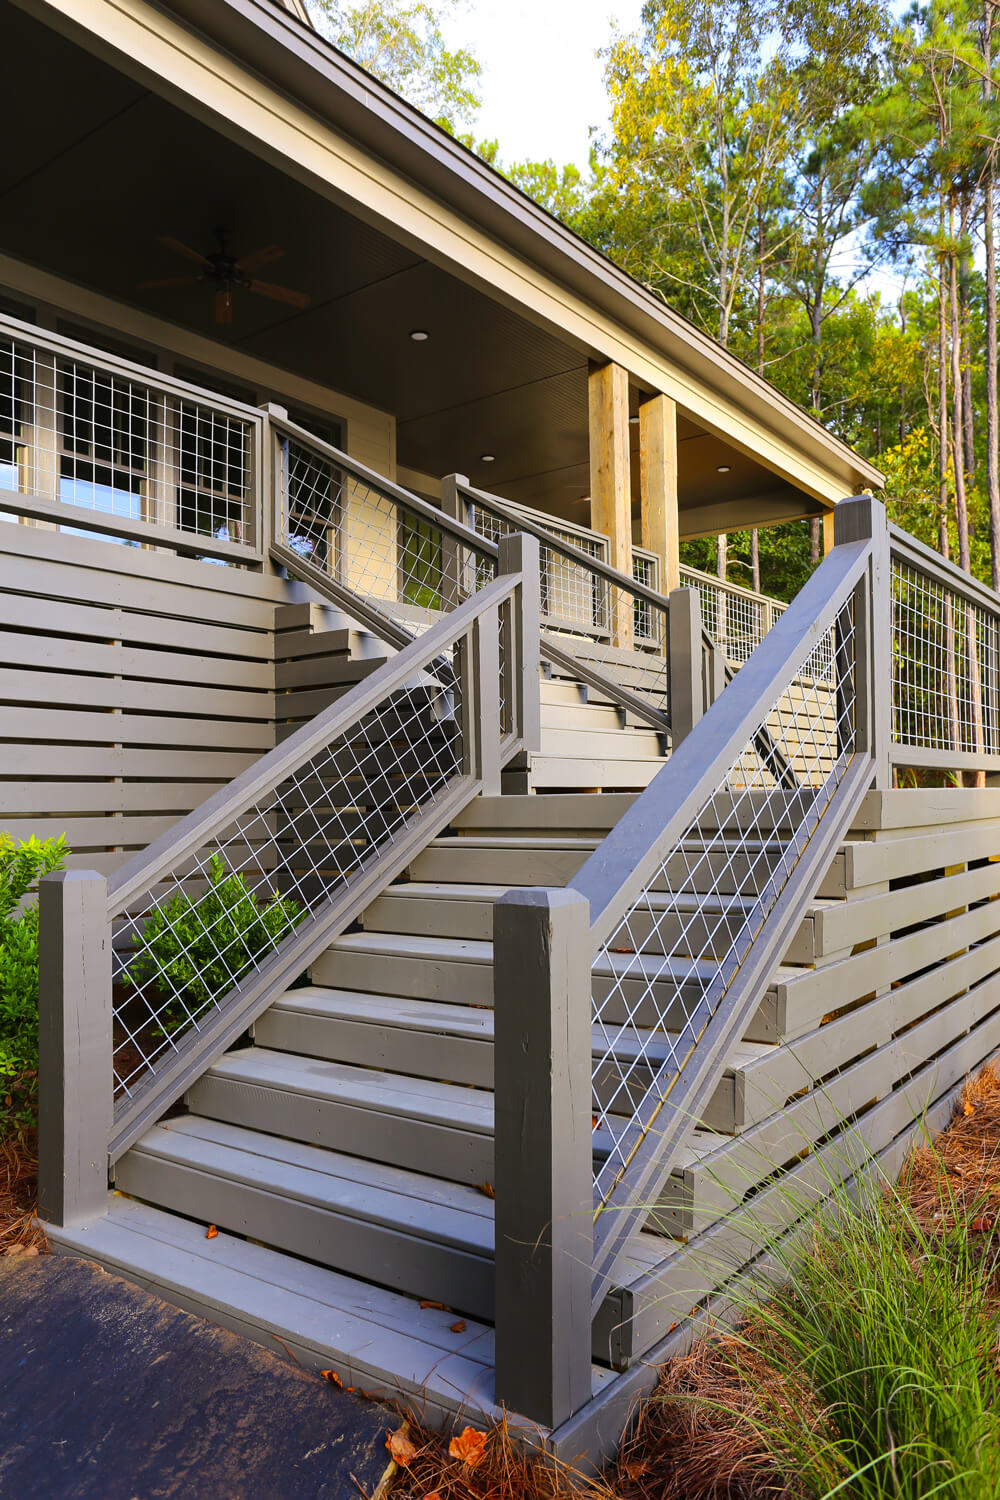 Lake House - Porch Stairs - Designed by Foshee Architecture